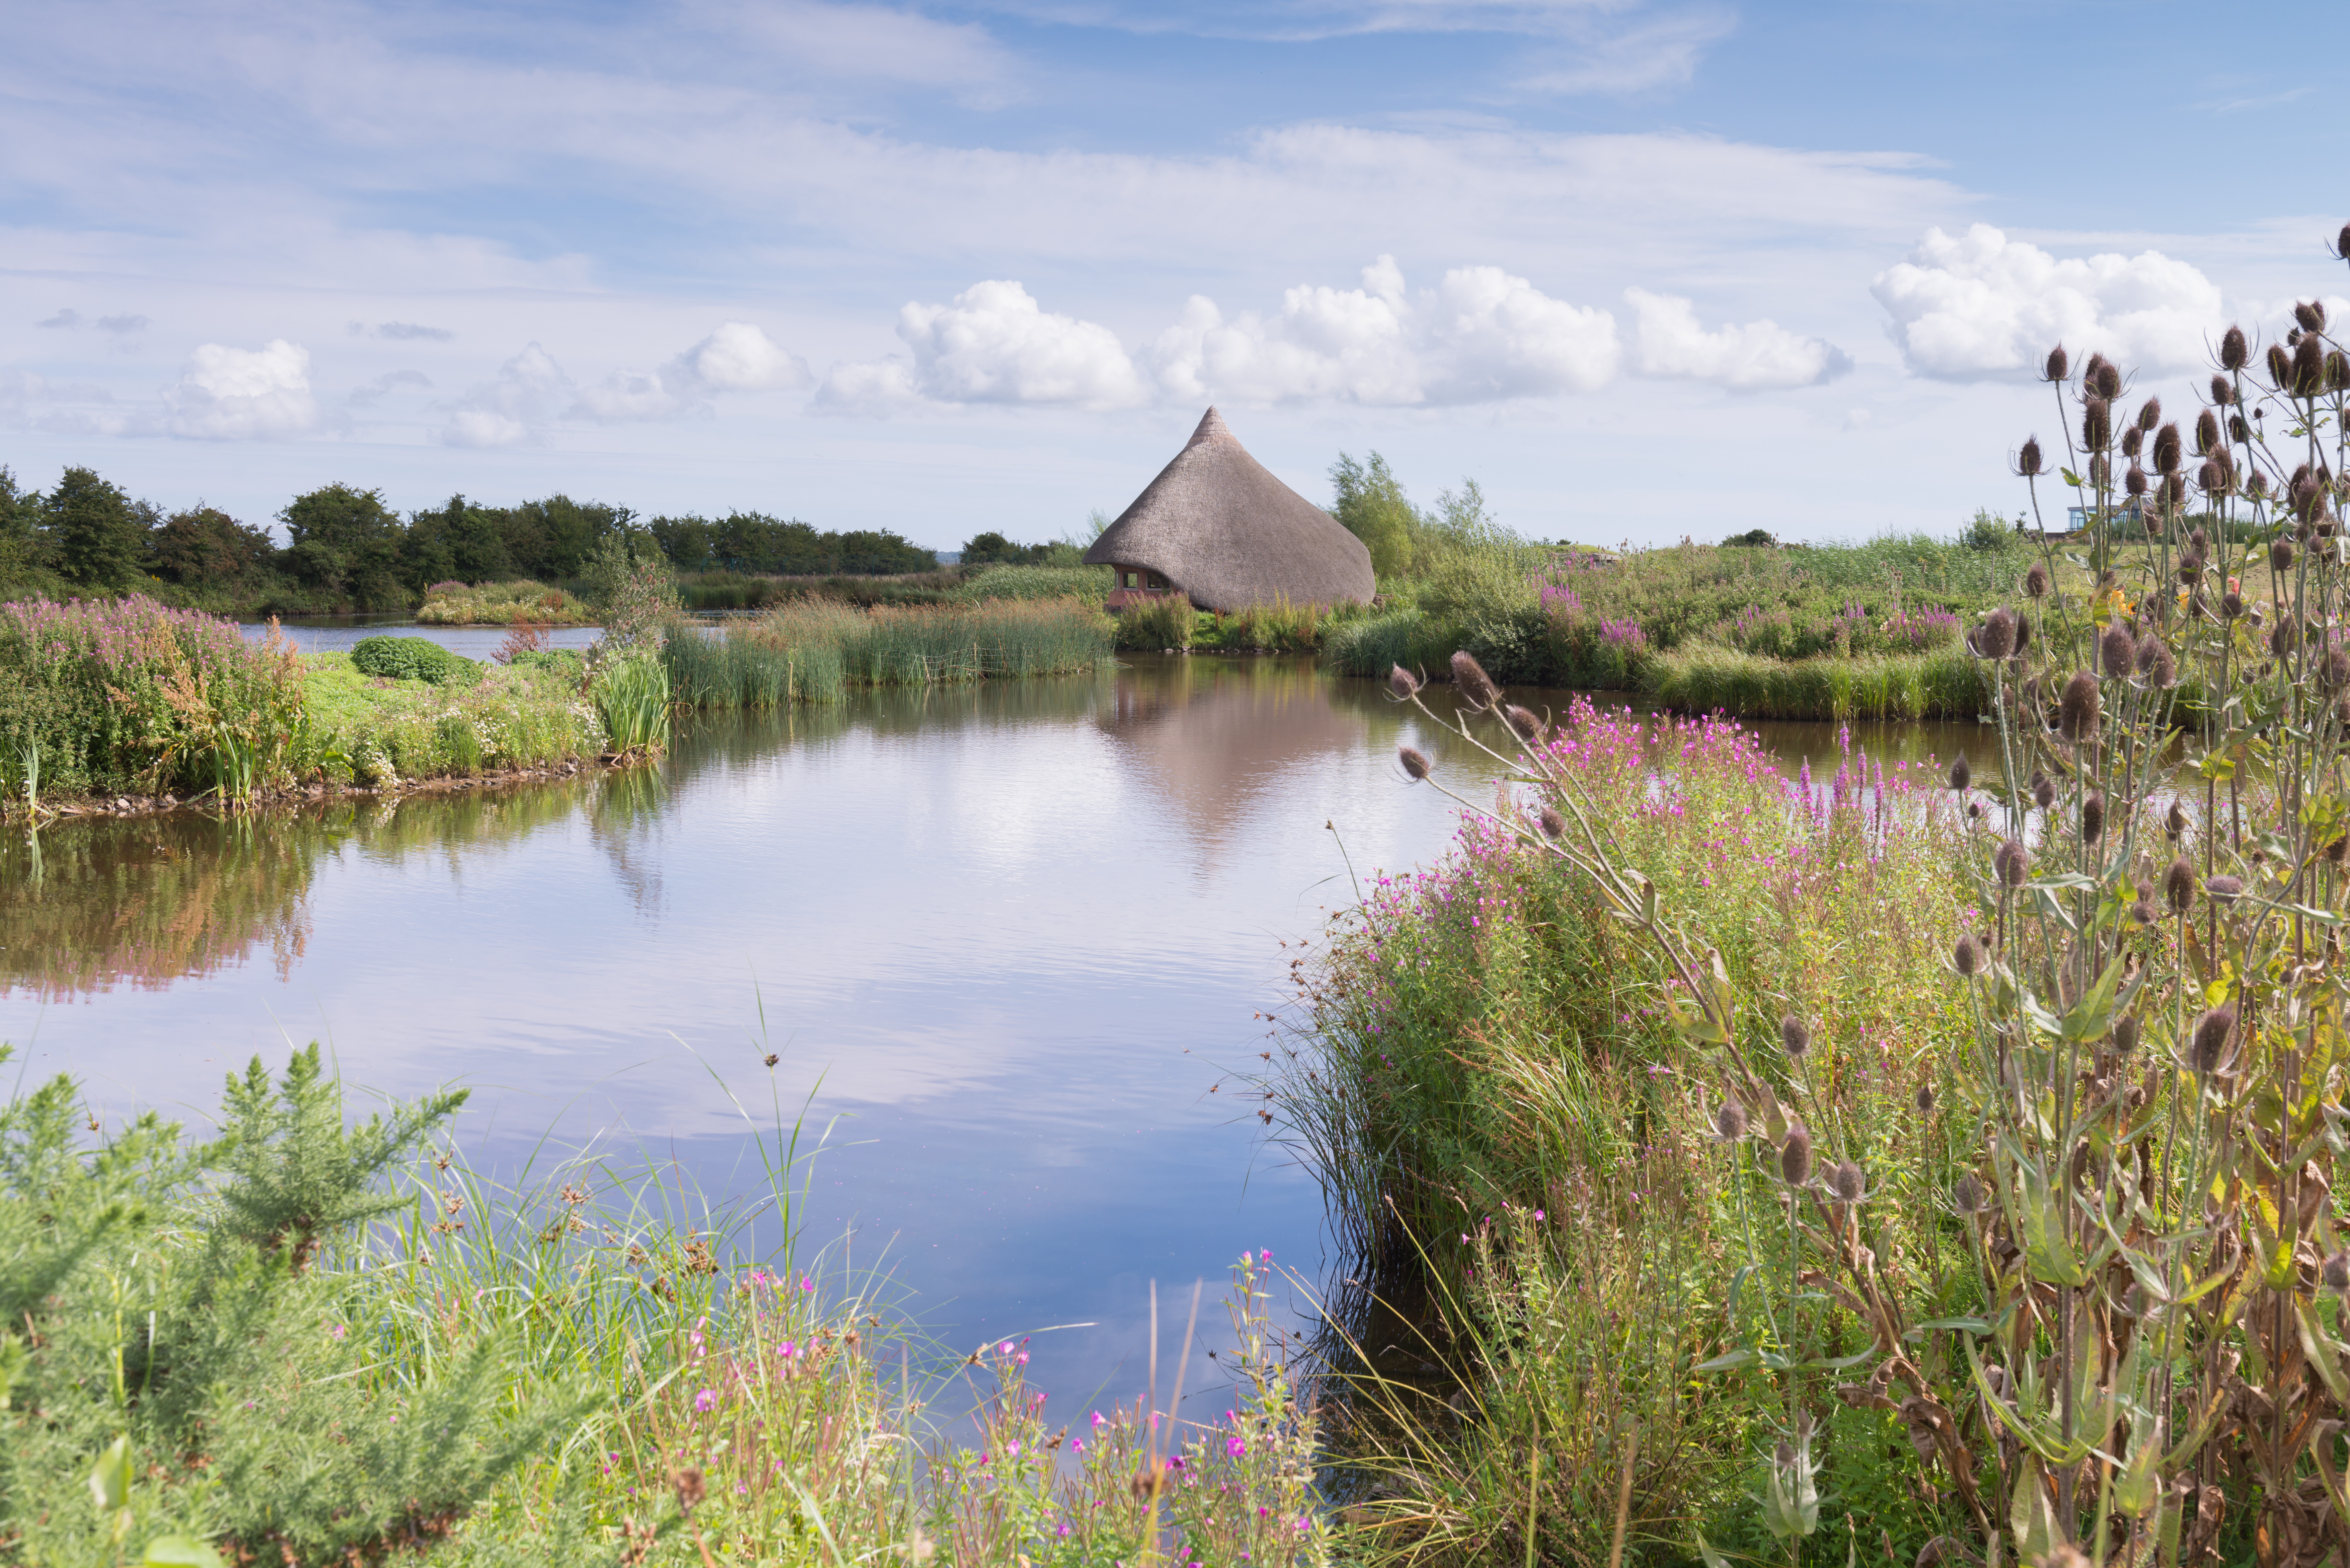 Castle Espie Wetland Centre receives grant of £203,400 from the Heritage Recovery Fund to help recover from the COVID-19 pandemic